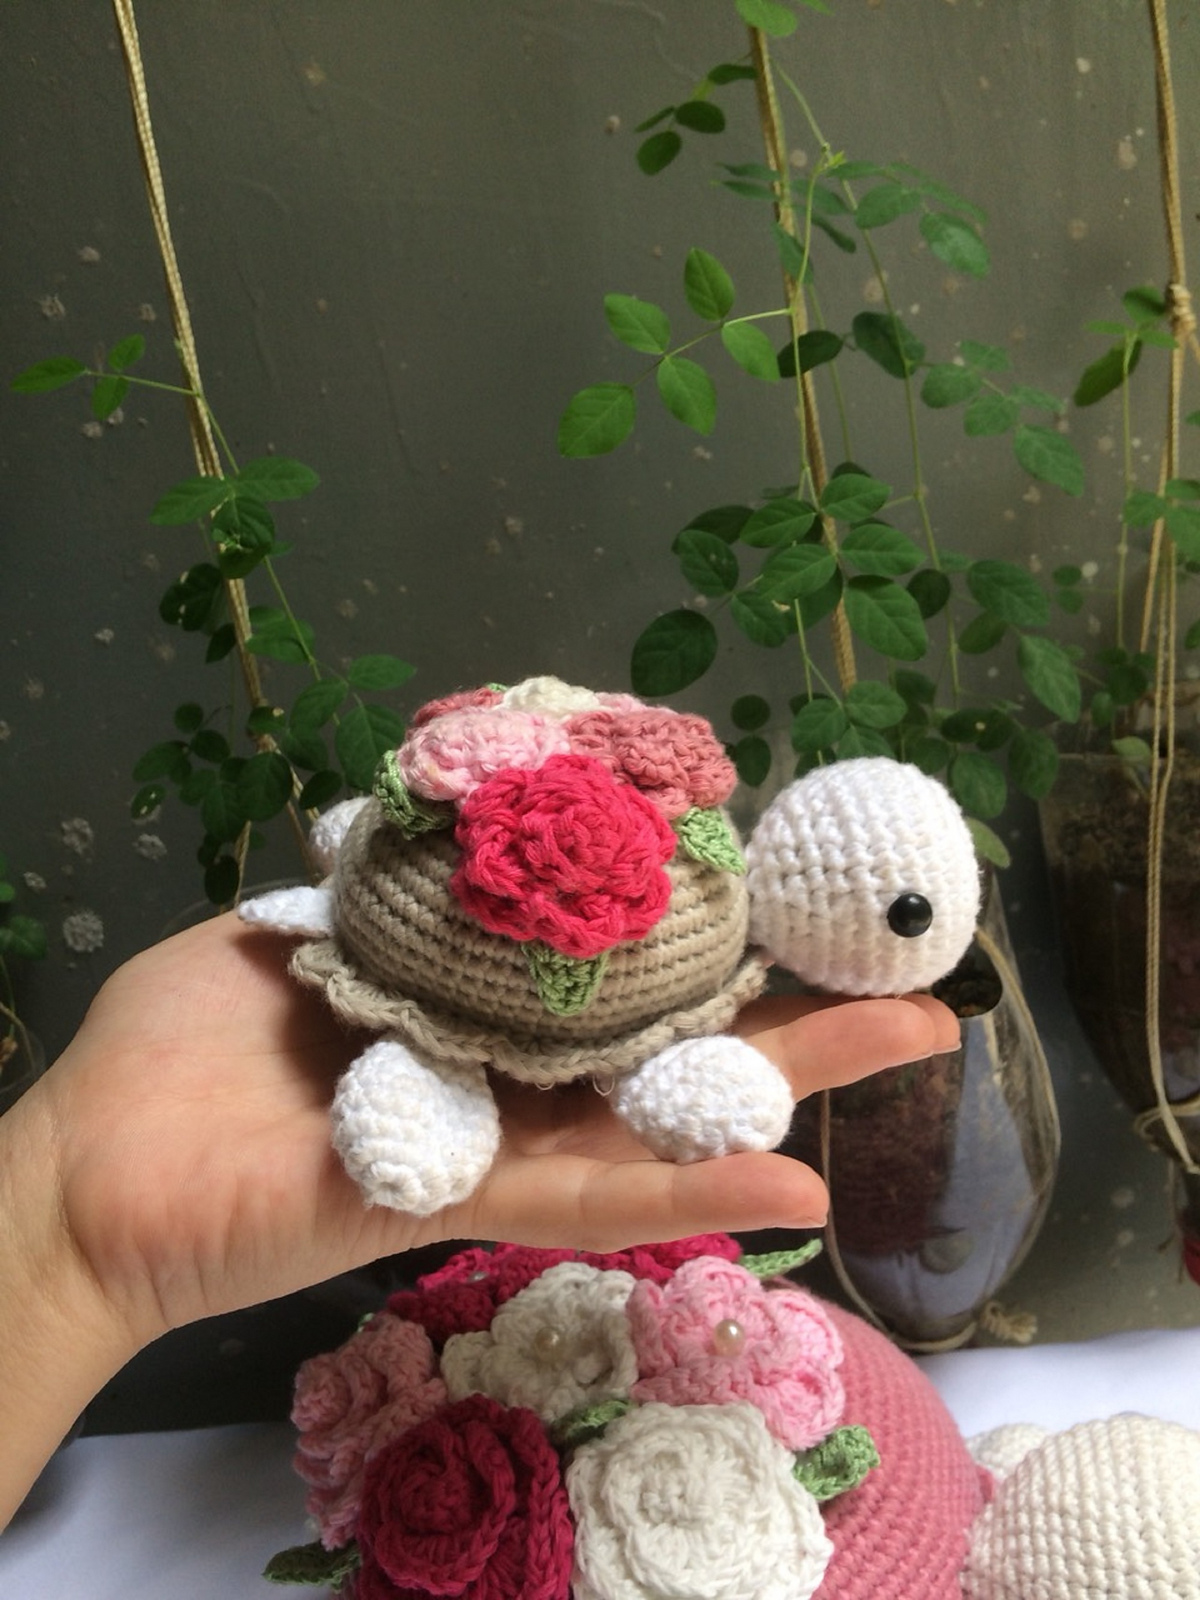 53-crochet-flower-patterns-and-what-to-do-with-them-easy-2019